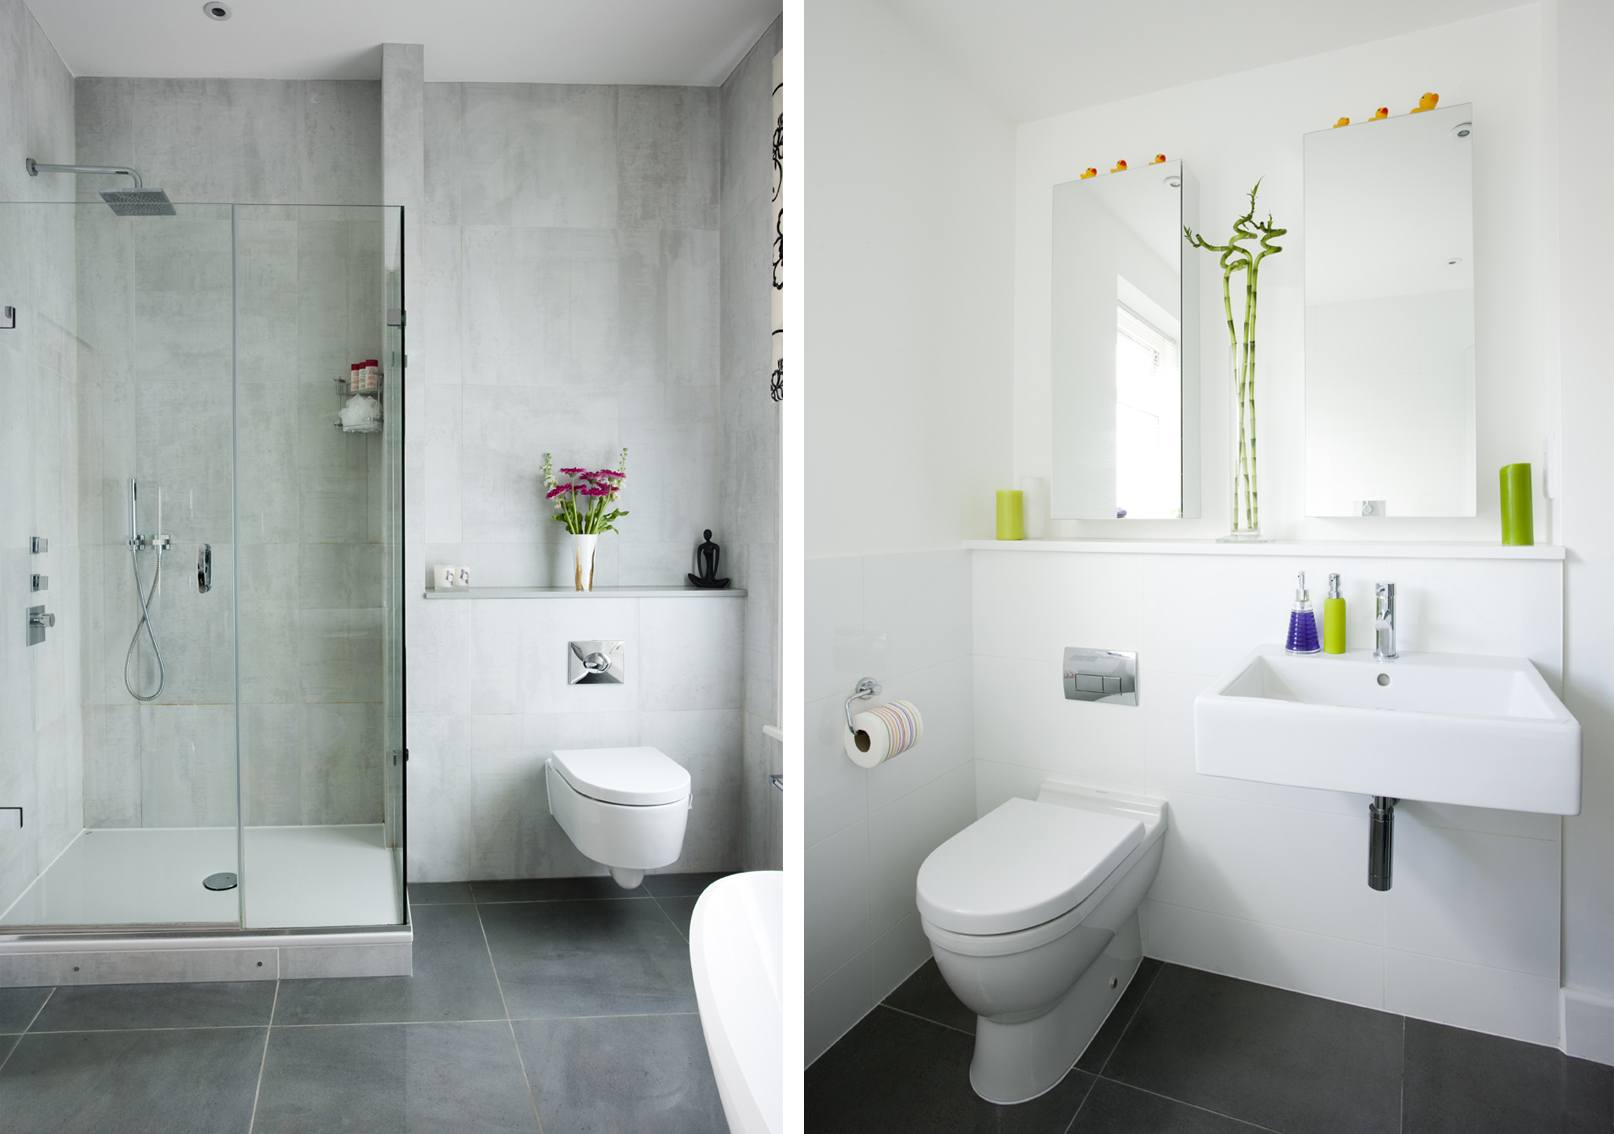 Tow small bathroom tiled with white wall tiles and grey floor tiles